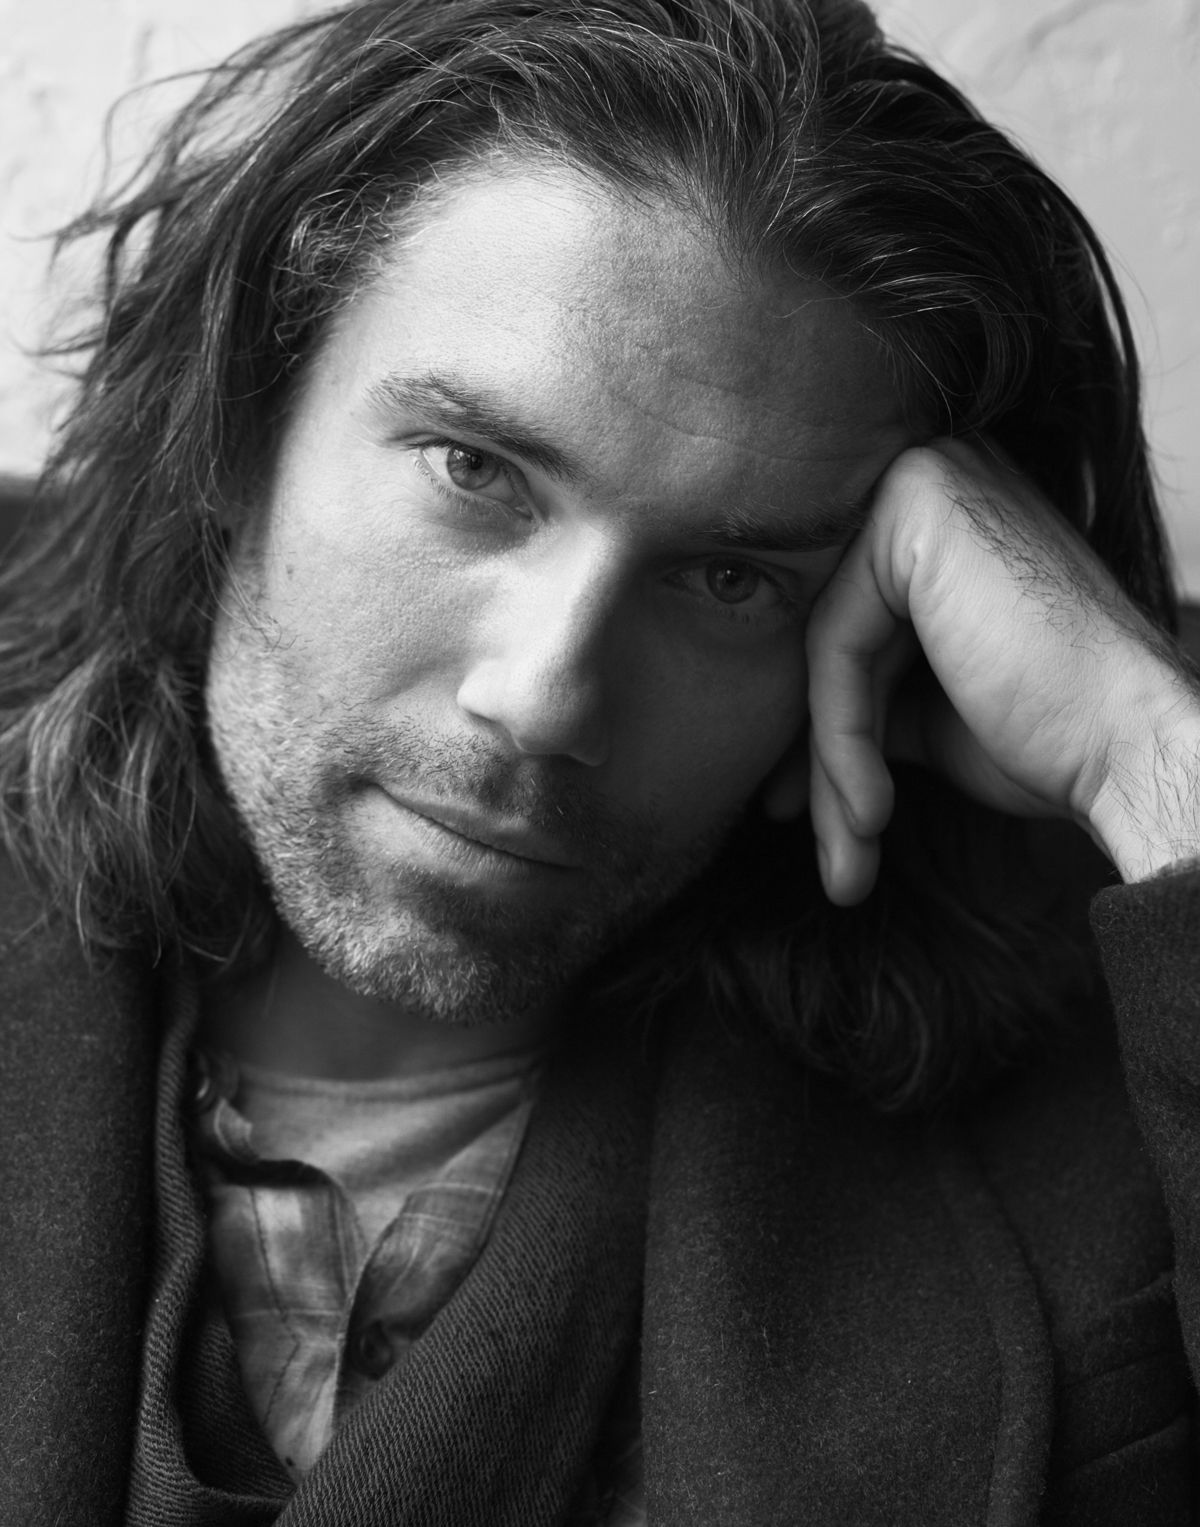 anson mount crossroads - photo #35